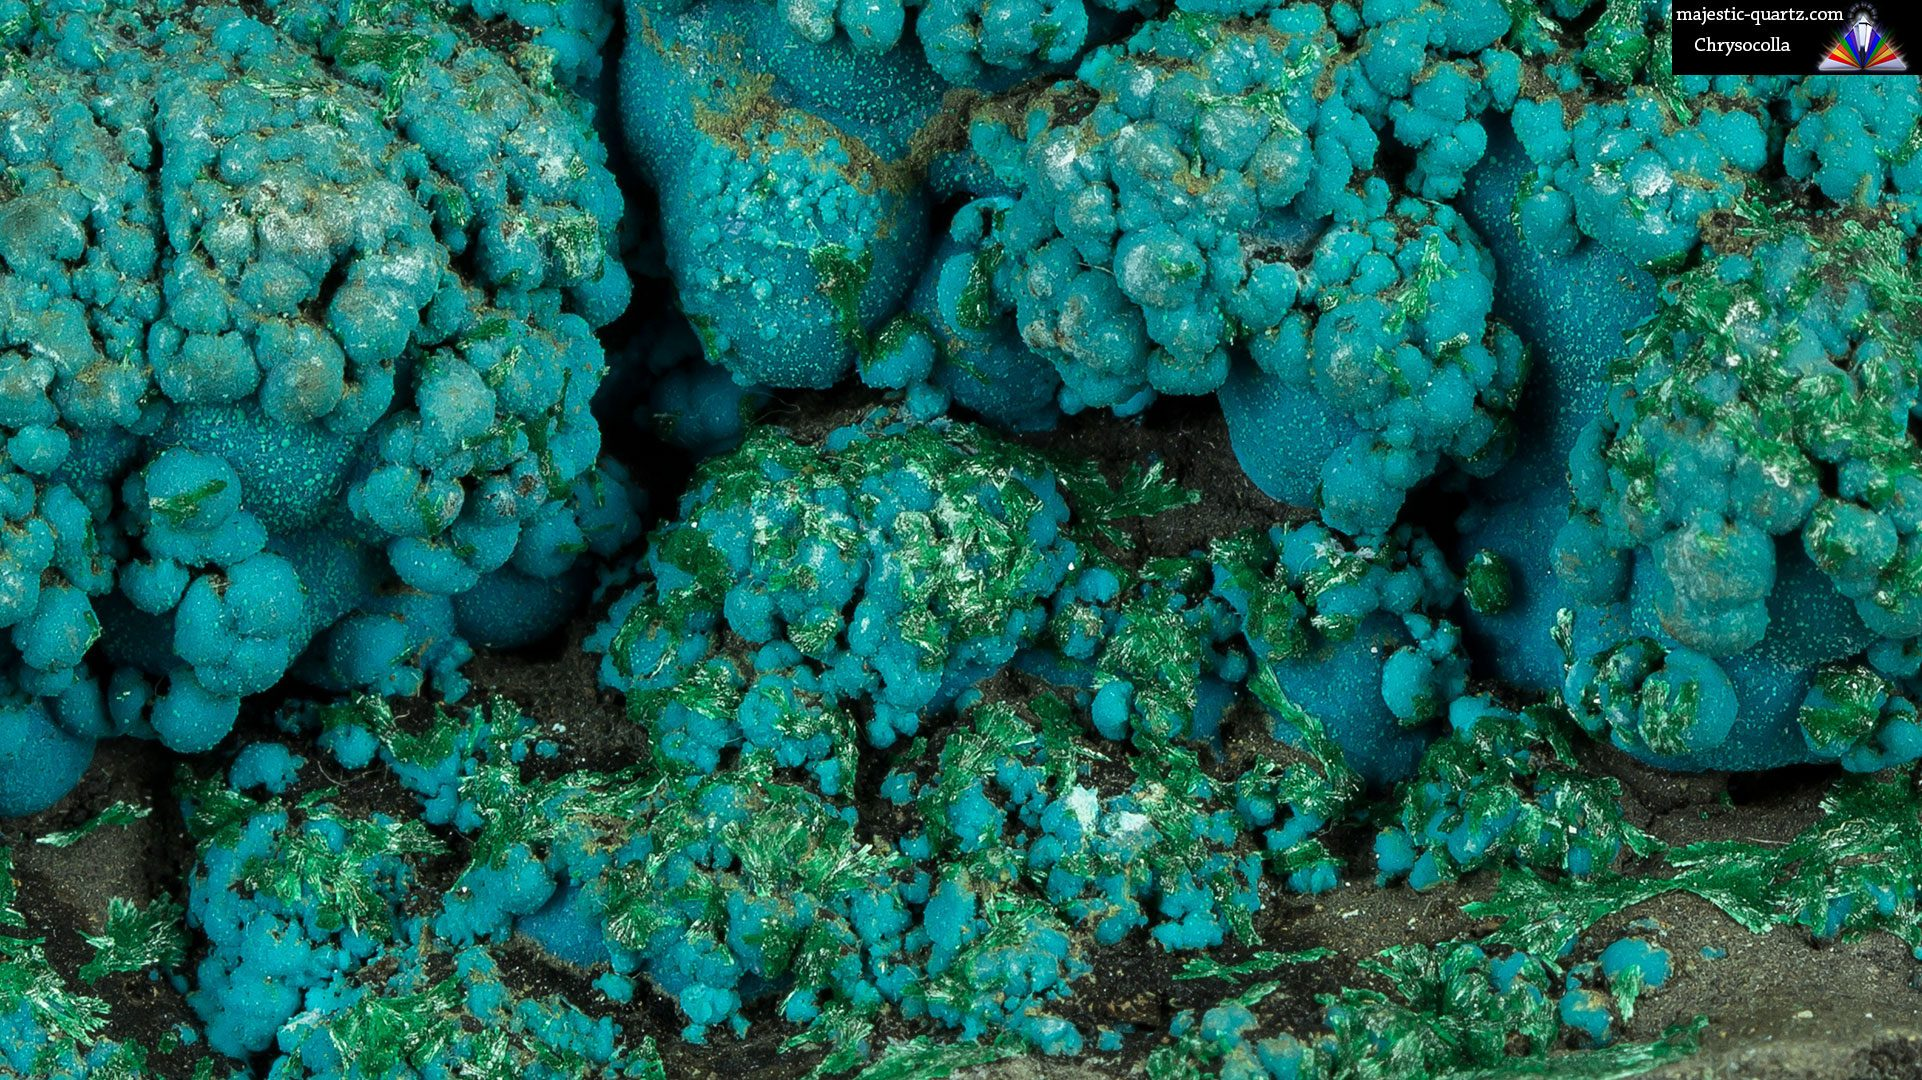 Chrysocolla Mineral Specimen - Photograph by Anthony Bradford